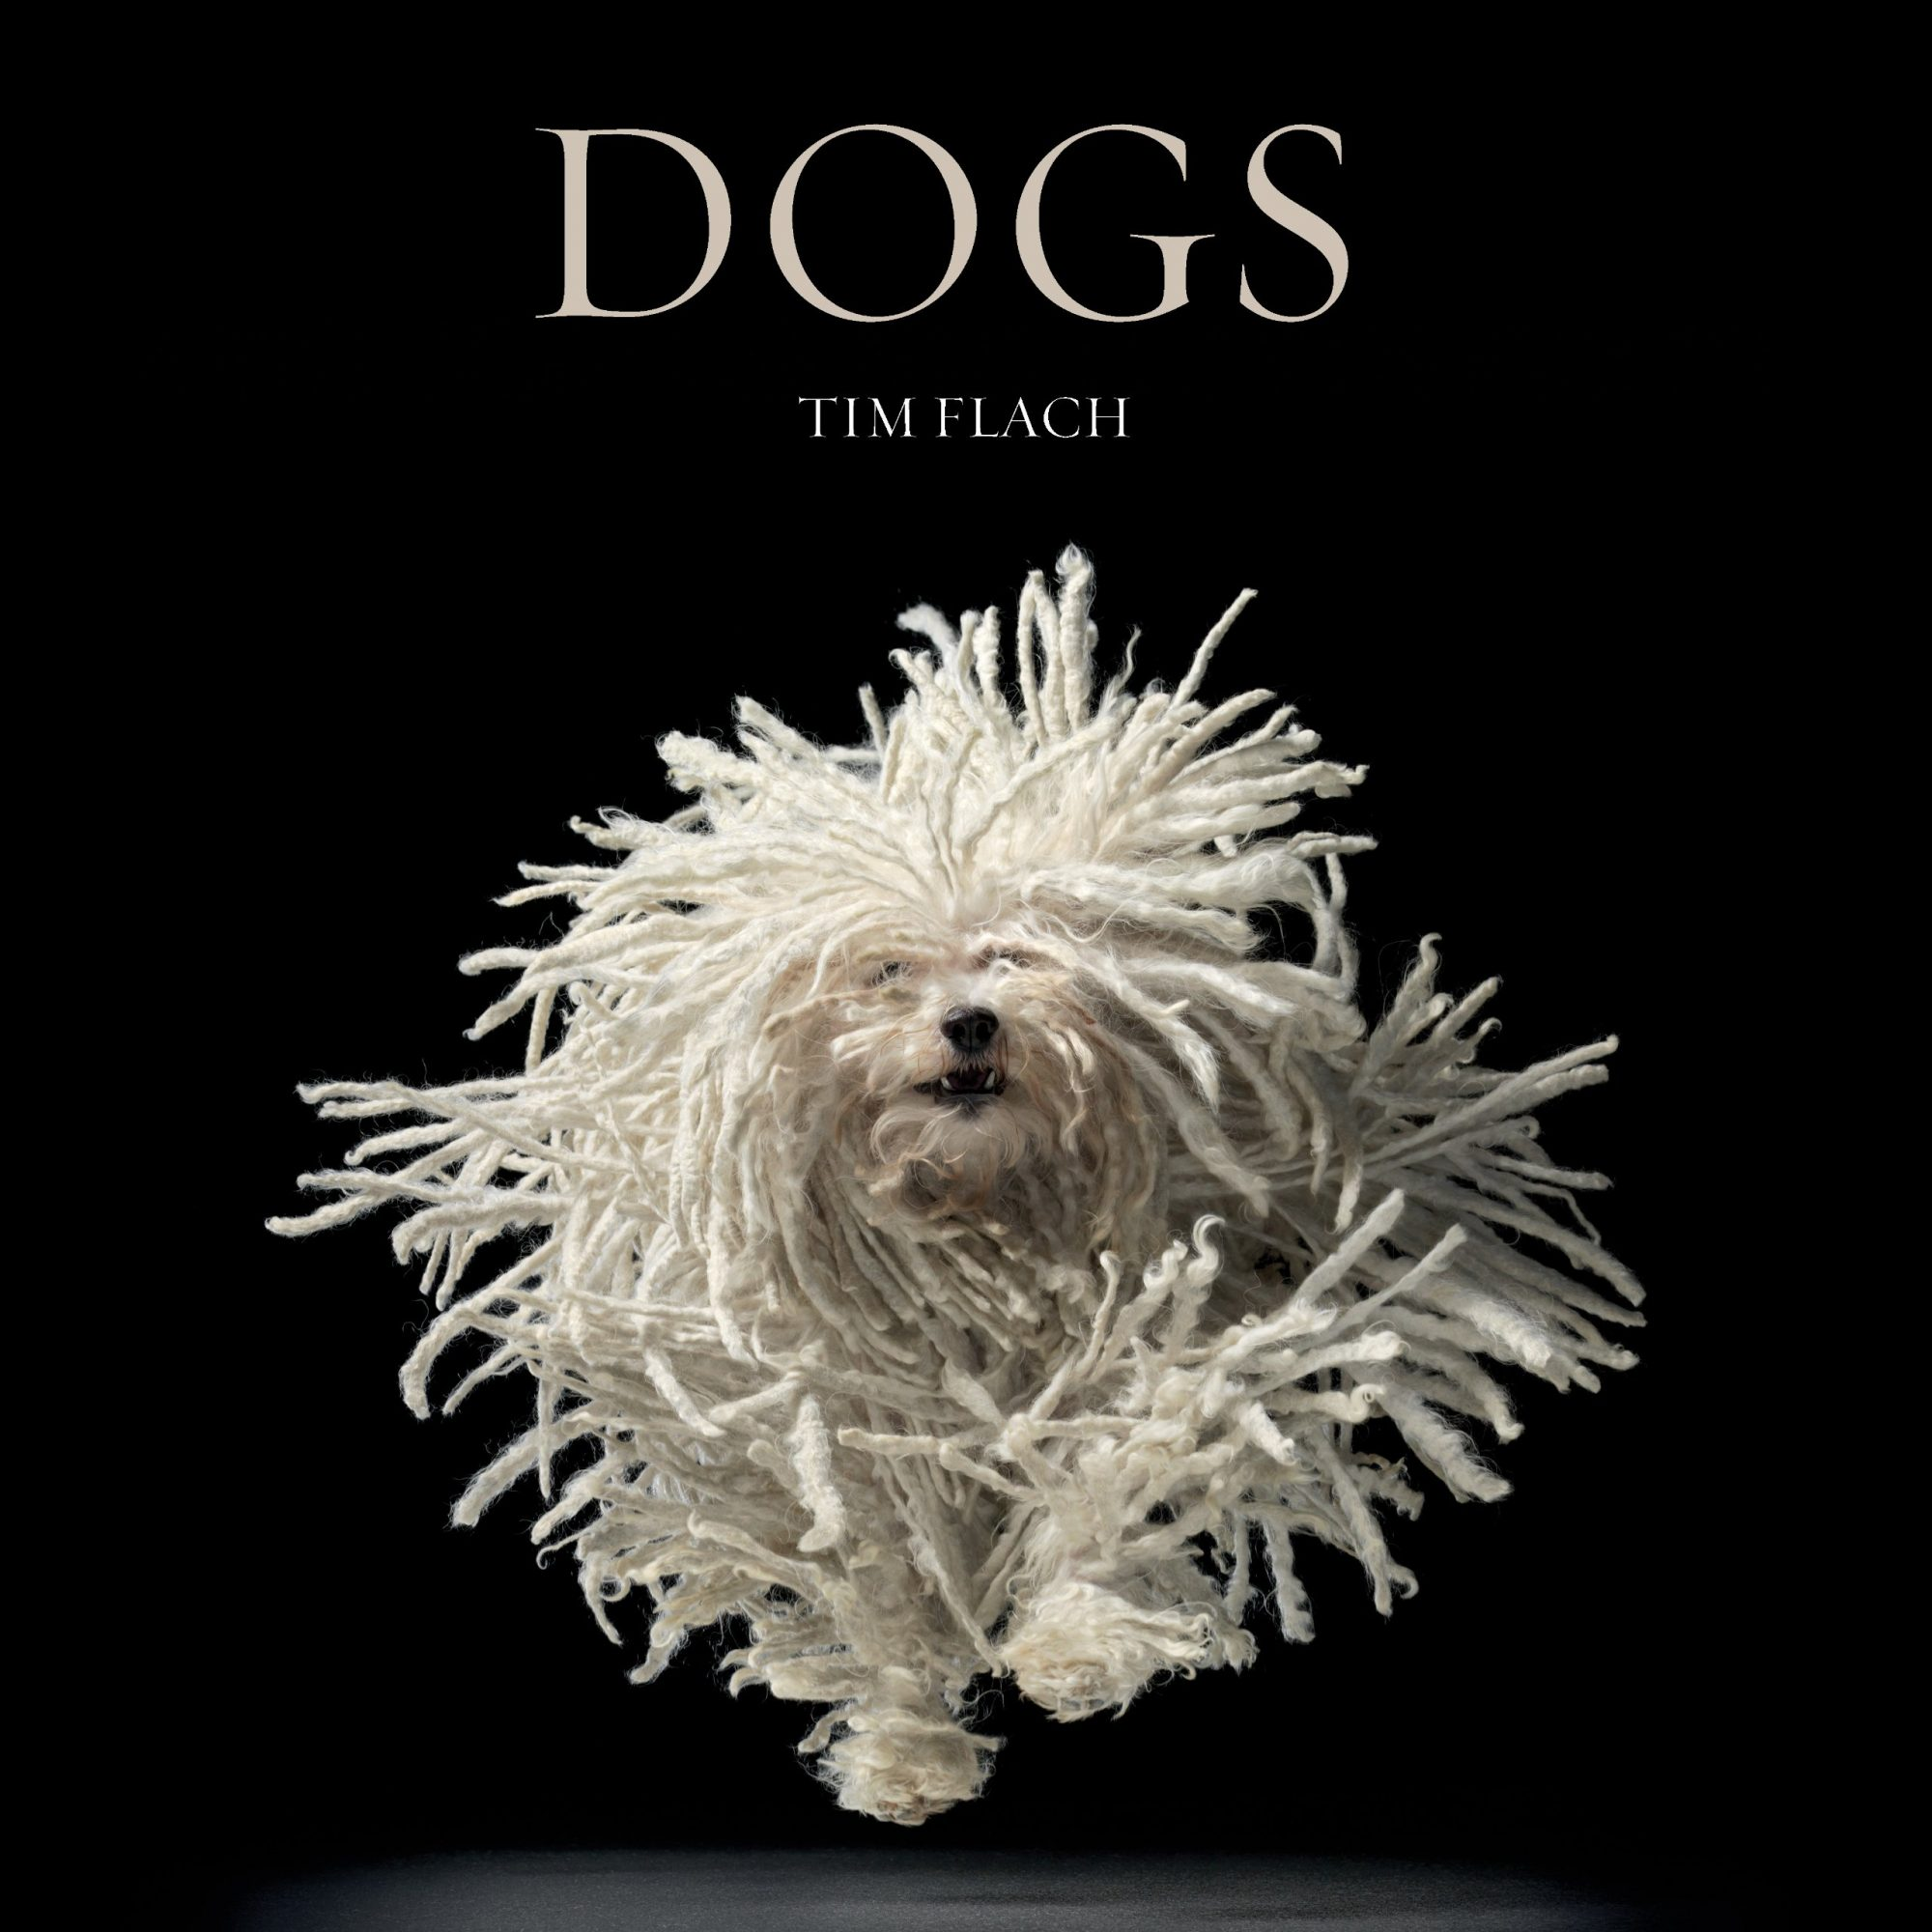 Dogs by Tim Flach and Lewis Blackwell